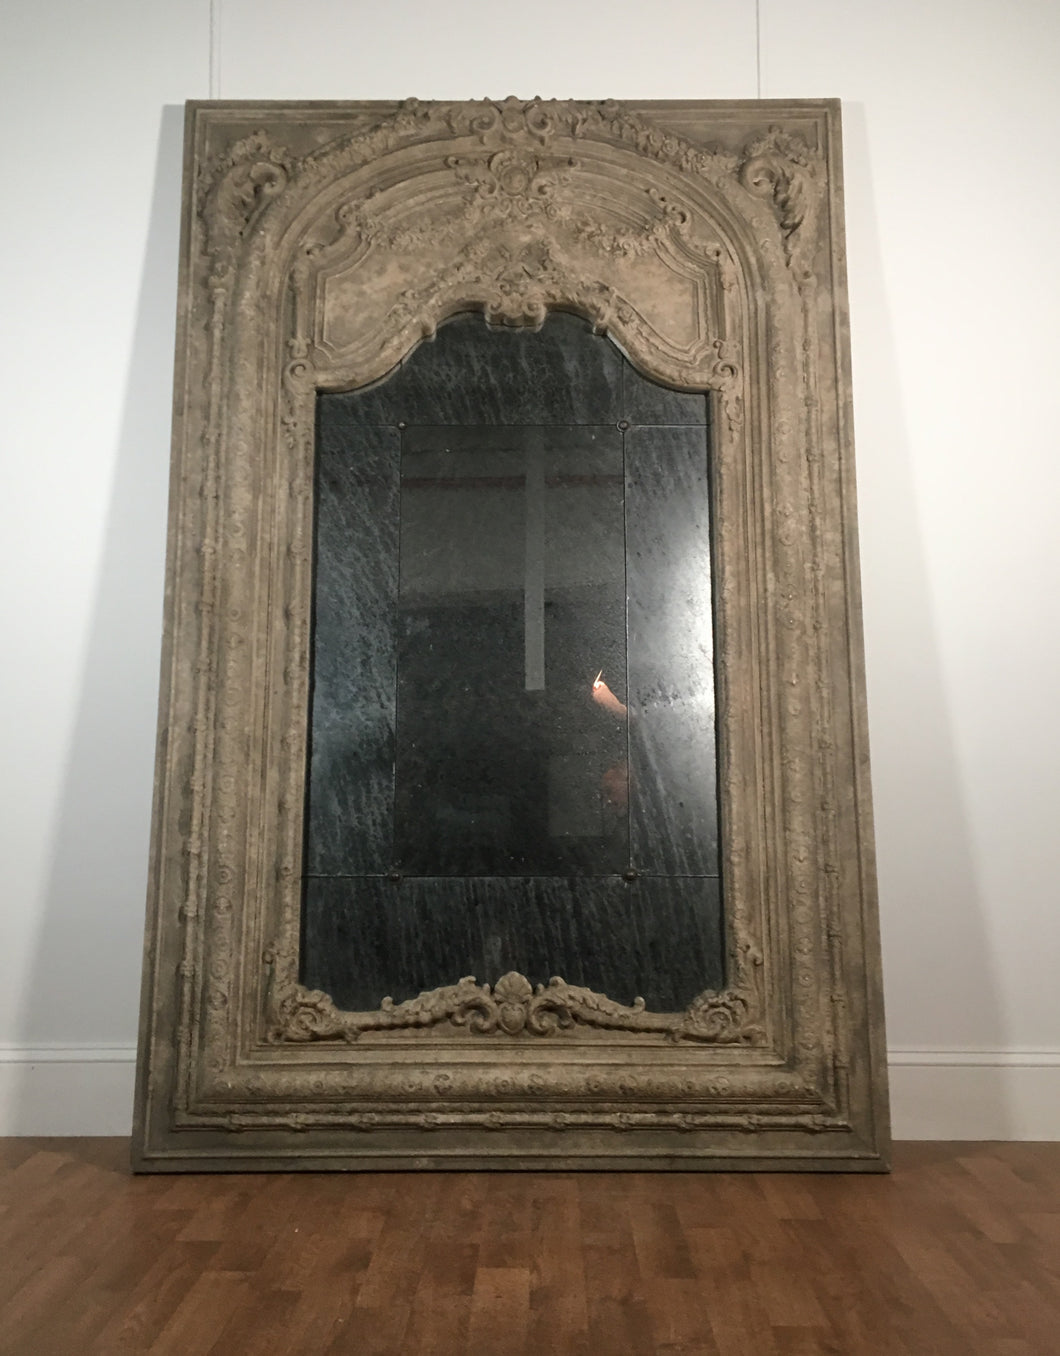 ANTIQUE STONE EFFECT MIRROR/LIMITED REFLECTIVENESS